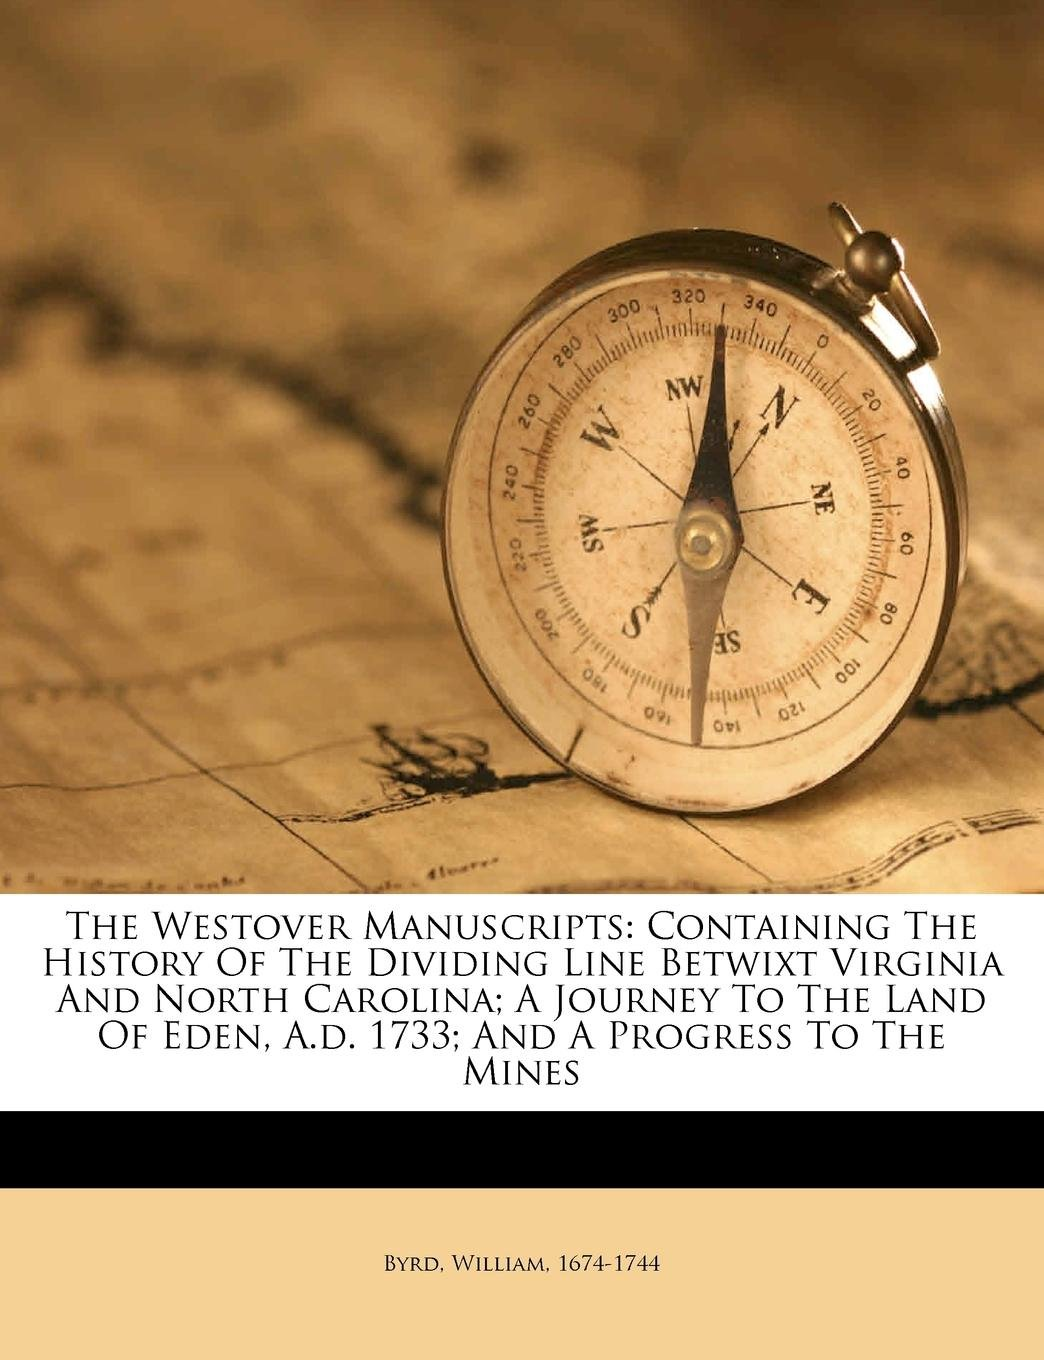 Download The Westover manuscripts: containing the history of the dividing line betwixt Virginia and North Carolina; a journey to the land of Eden, A.D. 1733; and a progress to the mines pdf